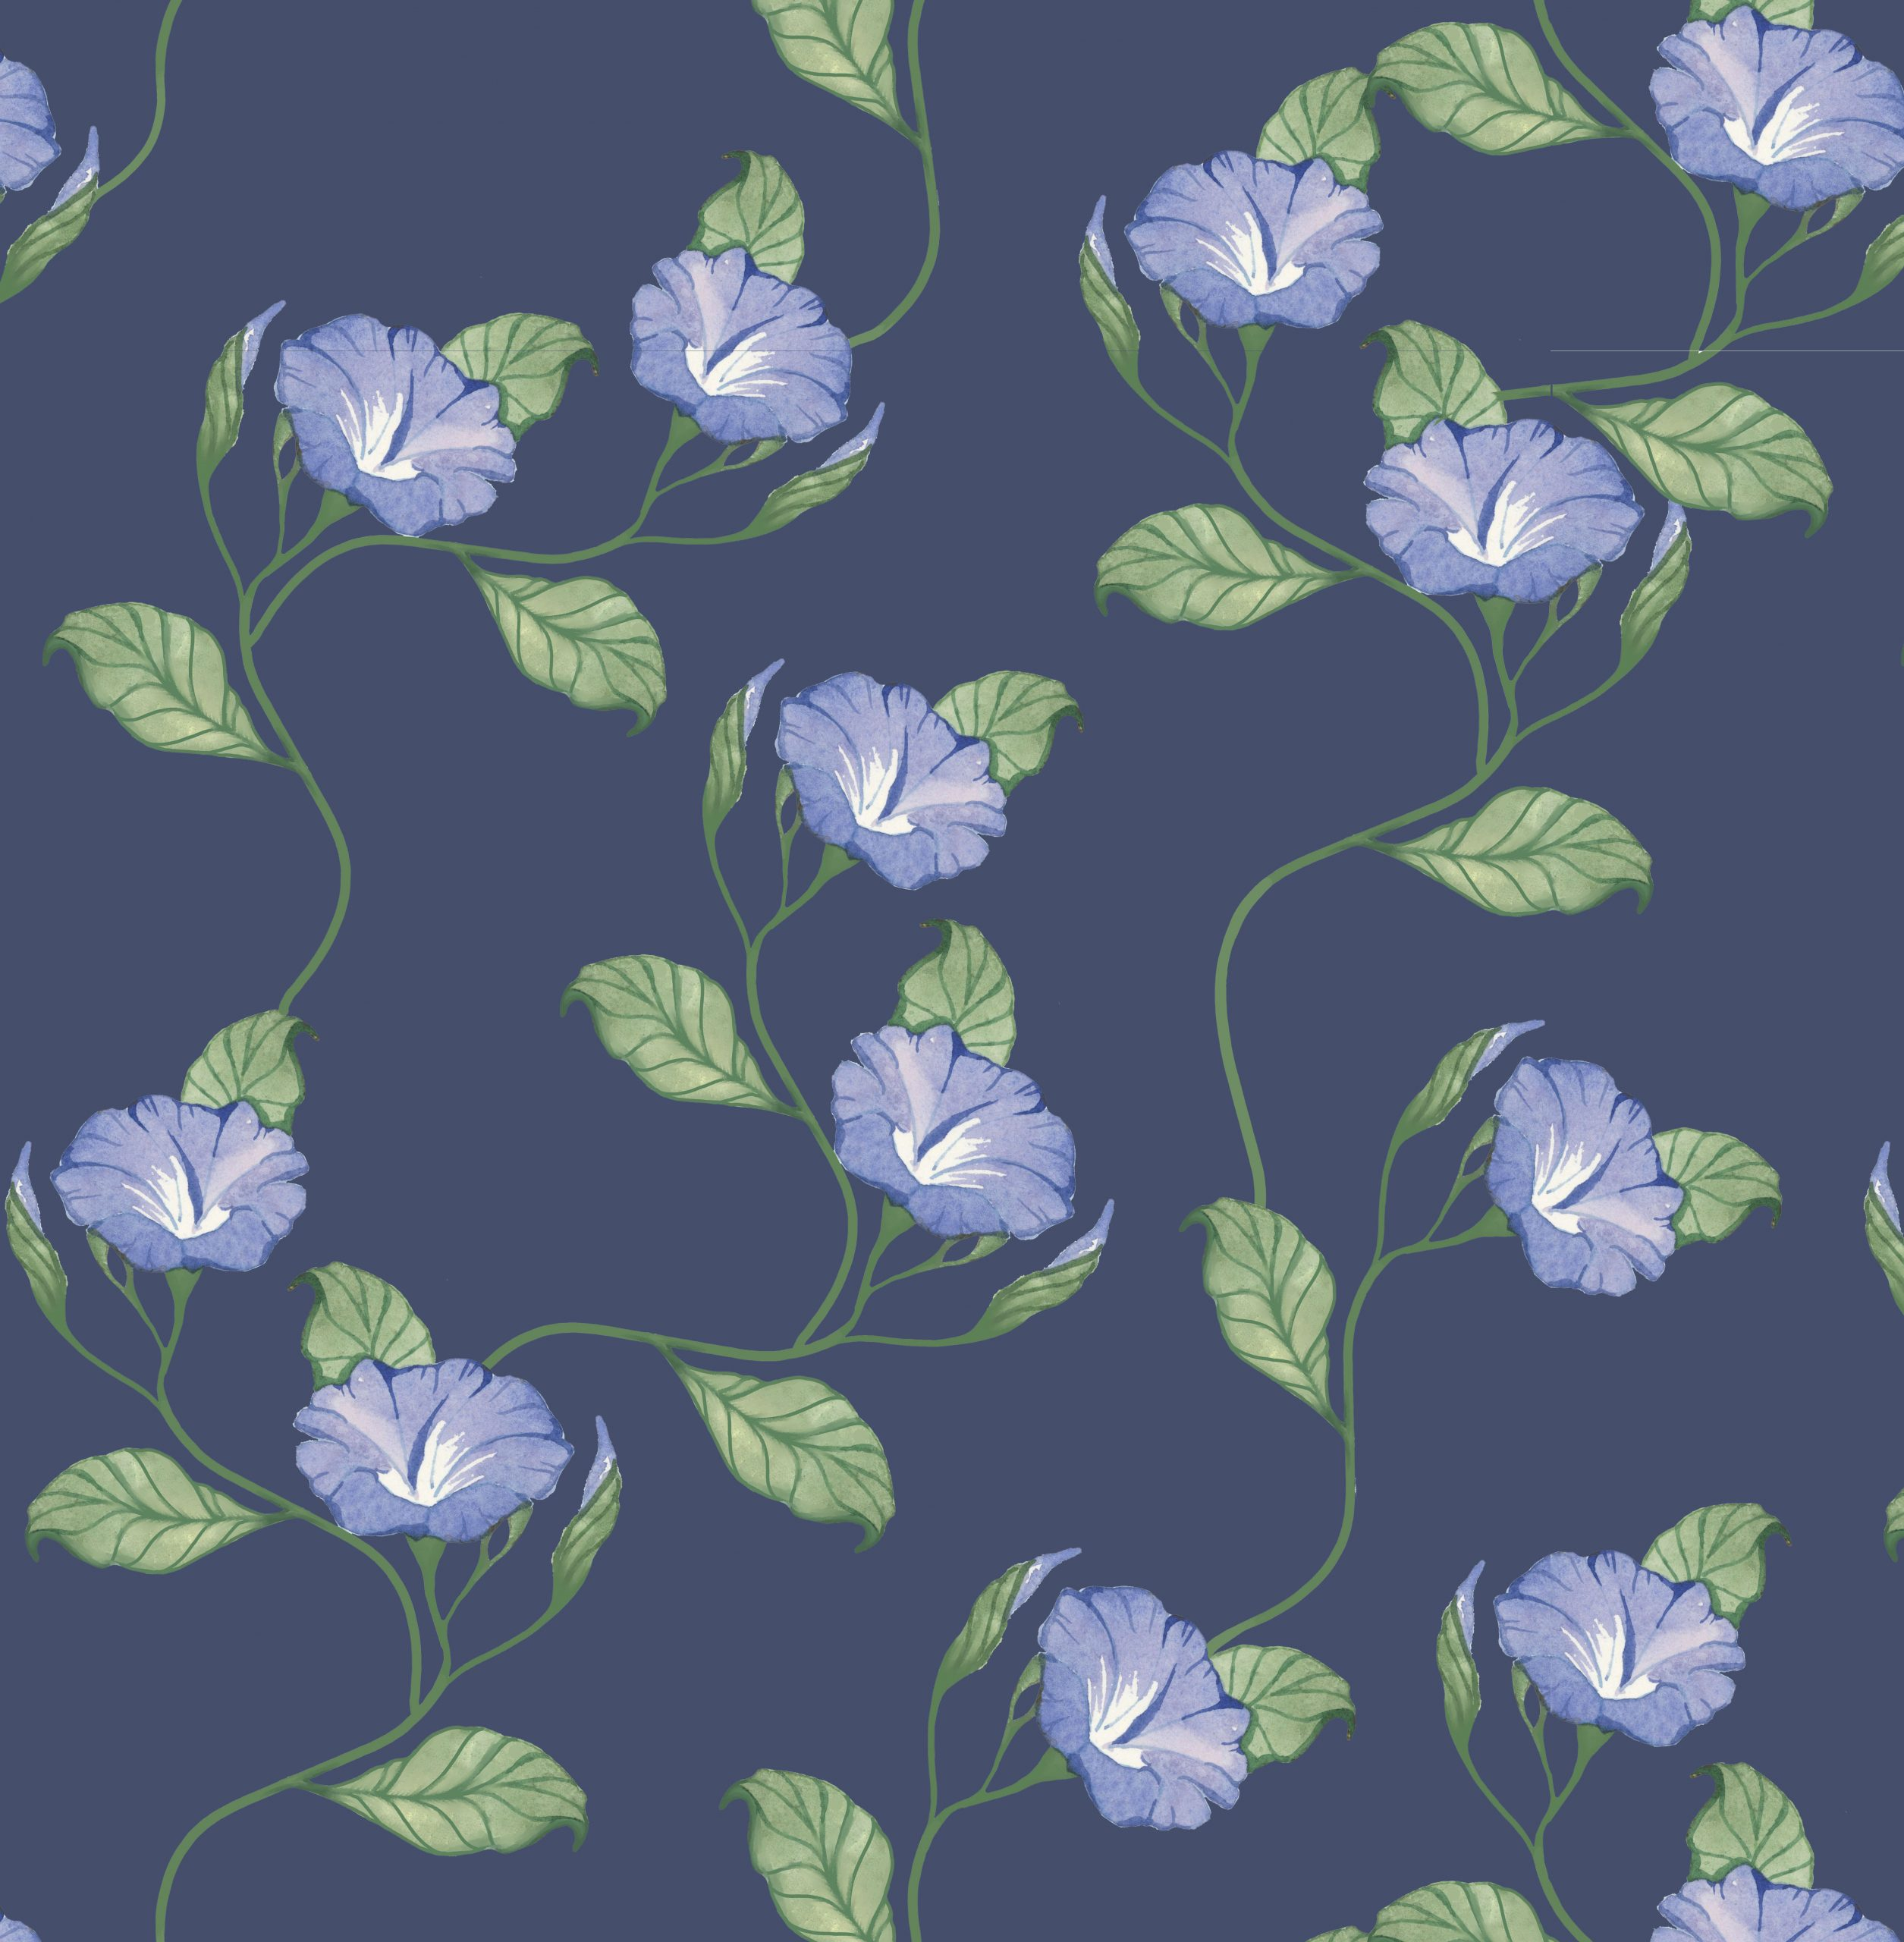 morning glory floral wallpaper fabric